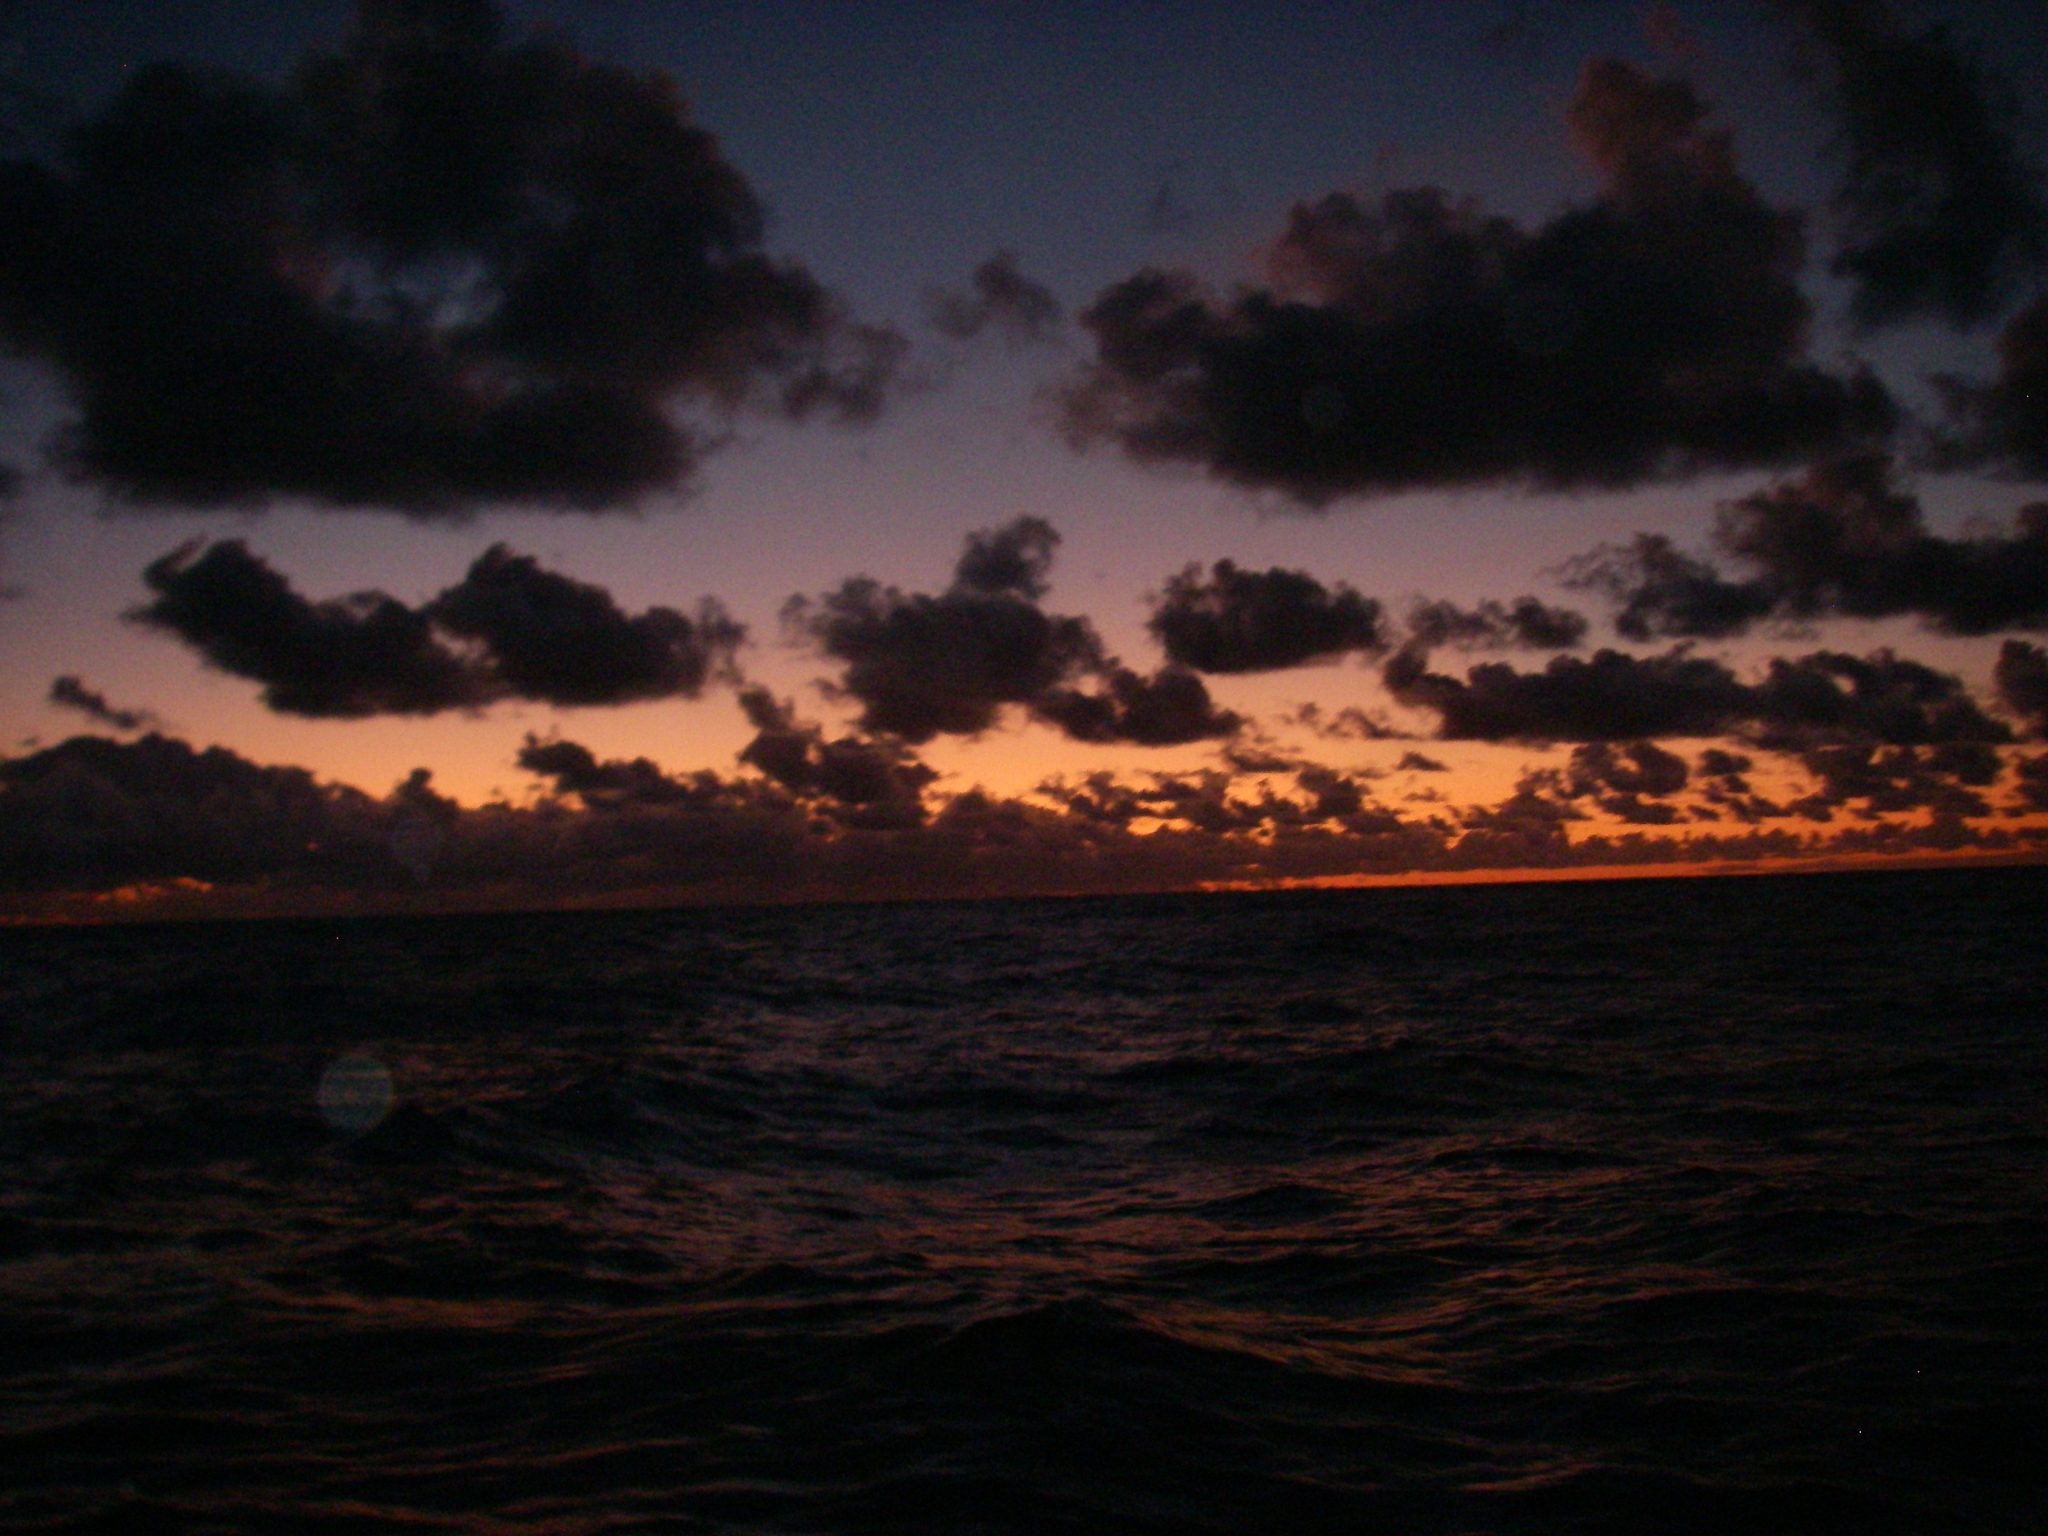 40.3. This is the first of a three photo series of the same sunrise in the Tasman Sea, a few miles off the coast of Eastern Australia. Sunrises at sea were such a delight! They changed